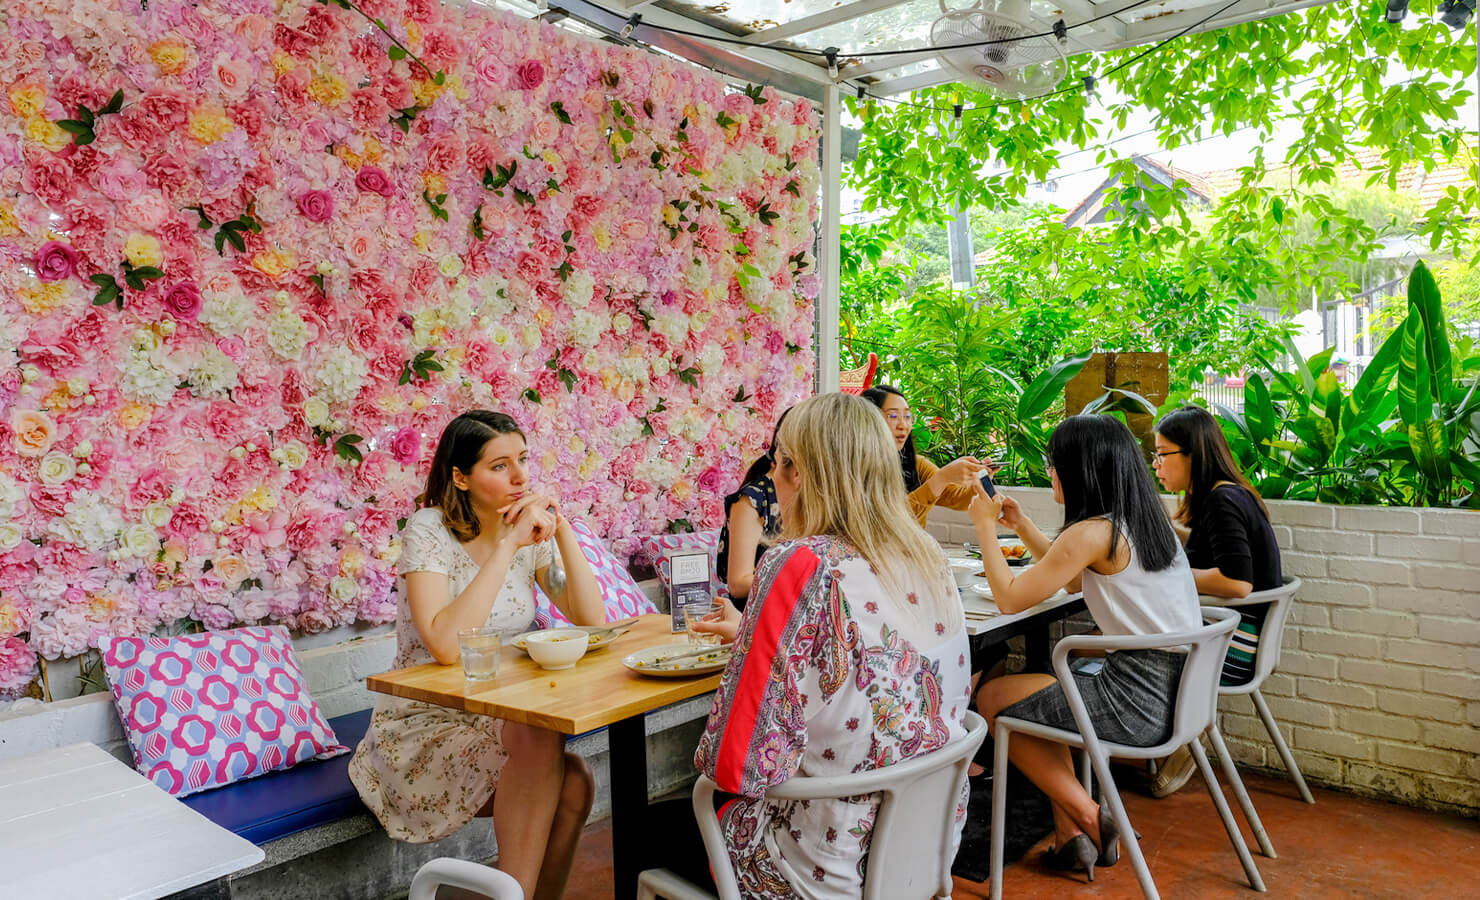 bloomthis-5-plant-flower-cafes-you-have-to-visit-09-lisettes